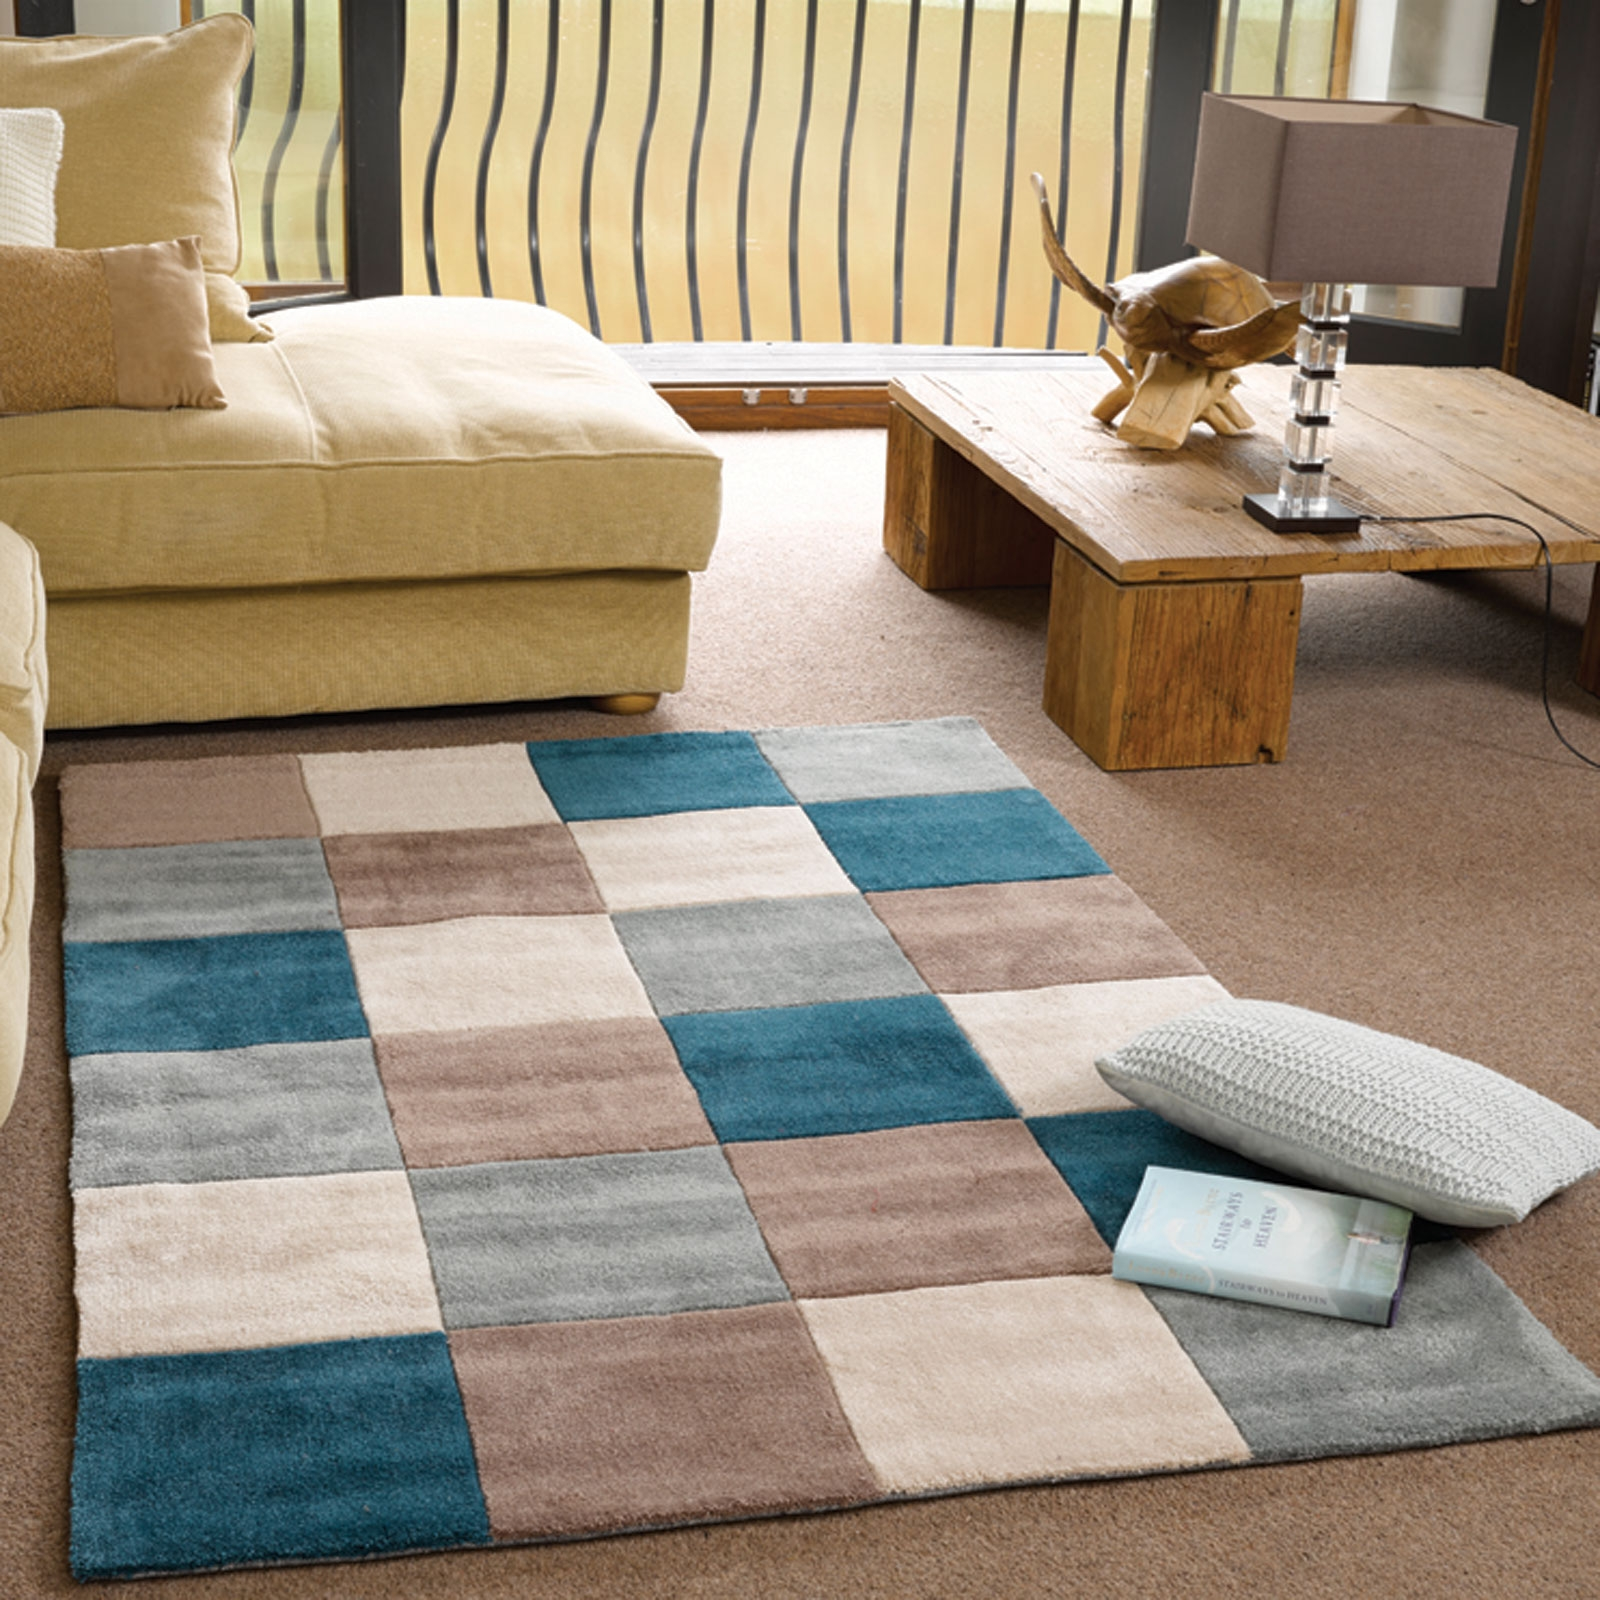 Inspire Squared Rugs In Teal Duck Egg Free Uk Delivery The Rug Pertaining To Duck Egg Rugs (Image 6 of 15)